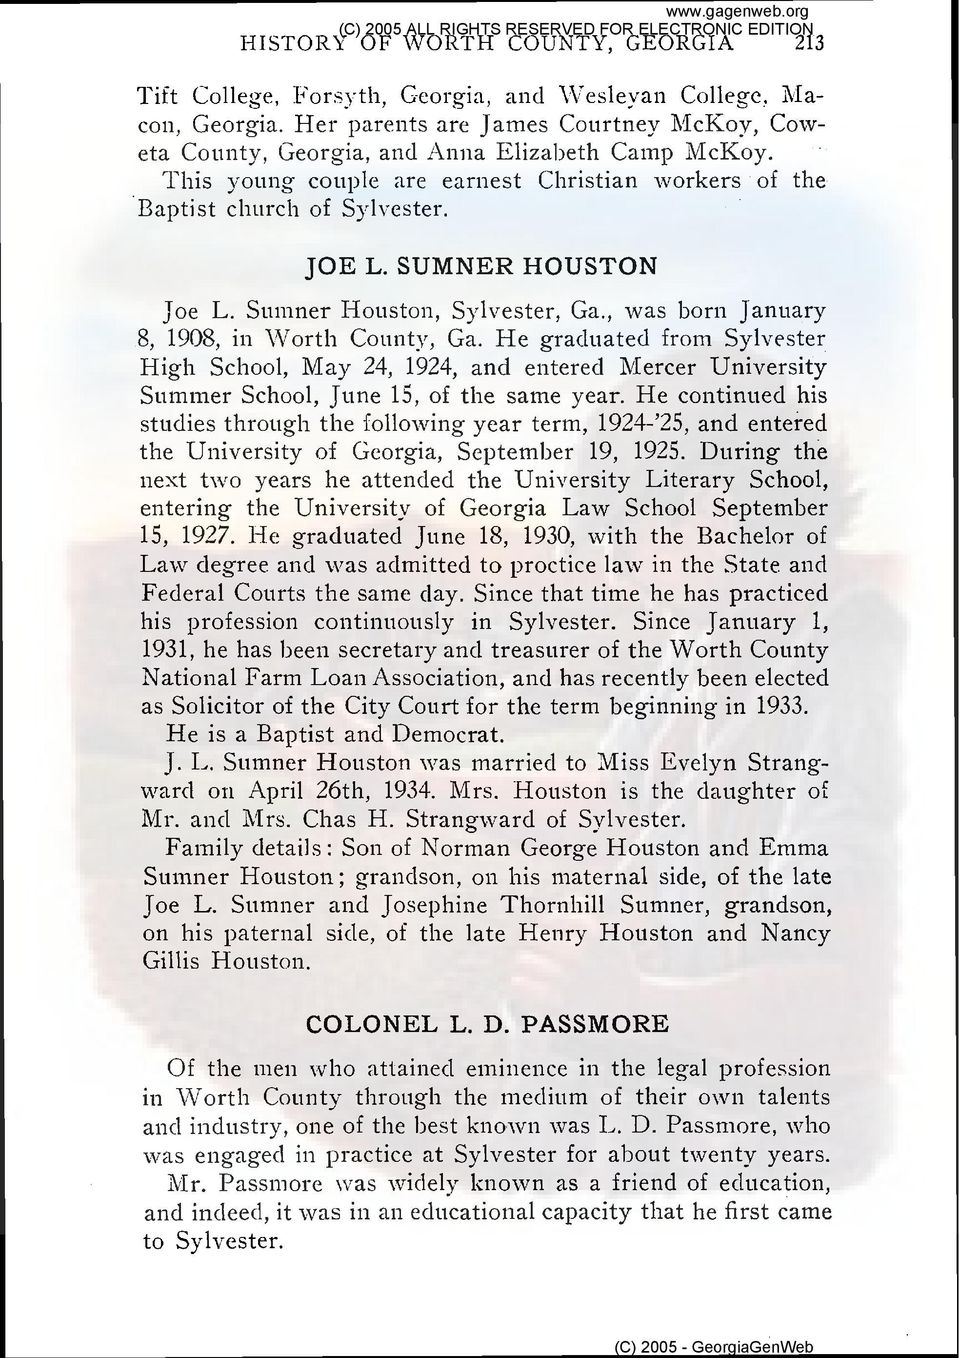 SUMNER HOUSTON Joe L. Suinner Houston, Sylvester, Ga., was born January 8, 1908, in Worth County, Ga.